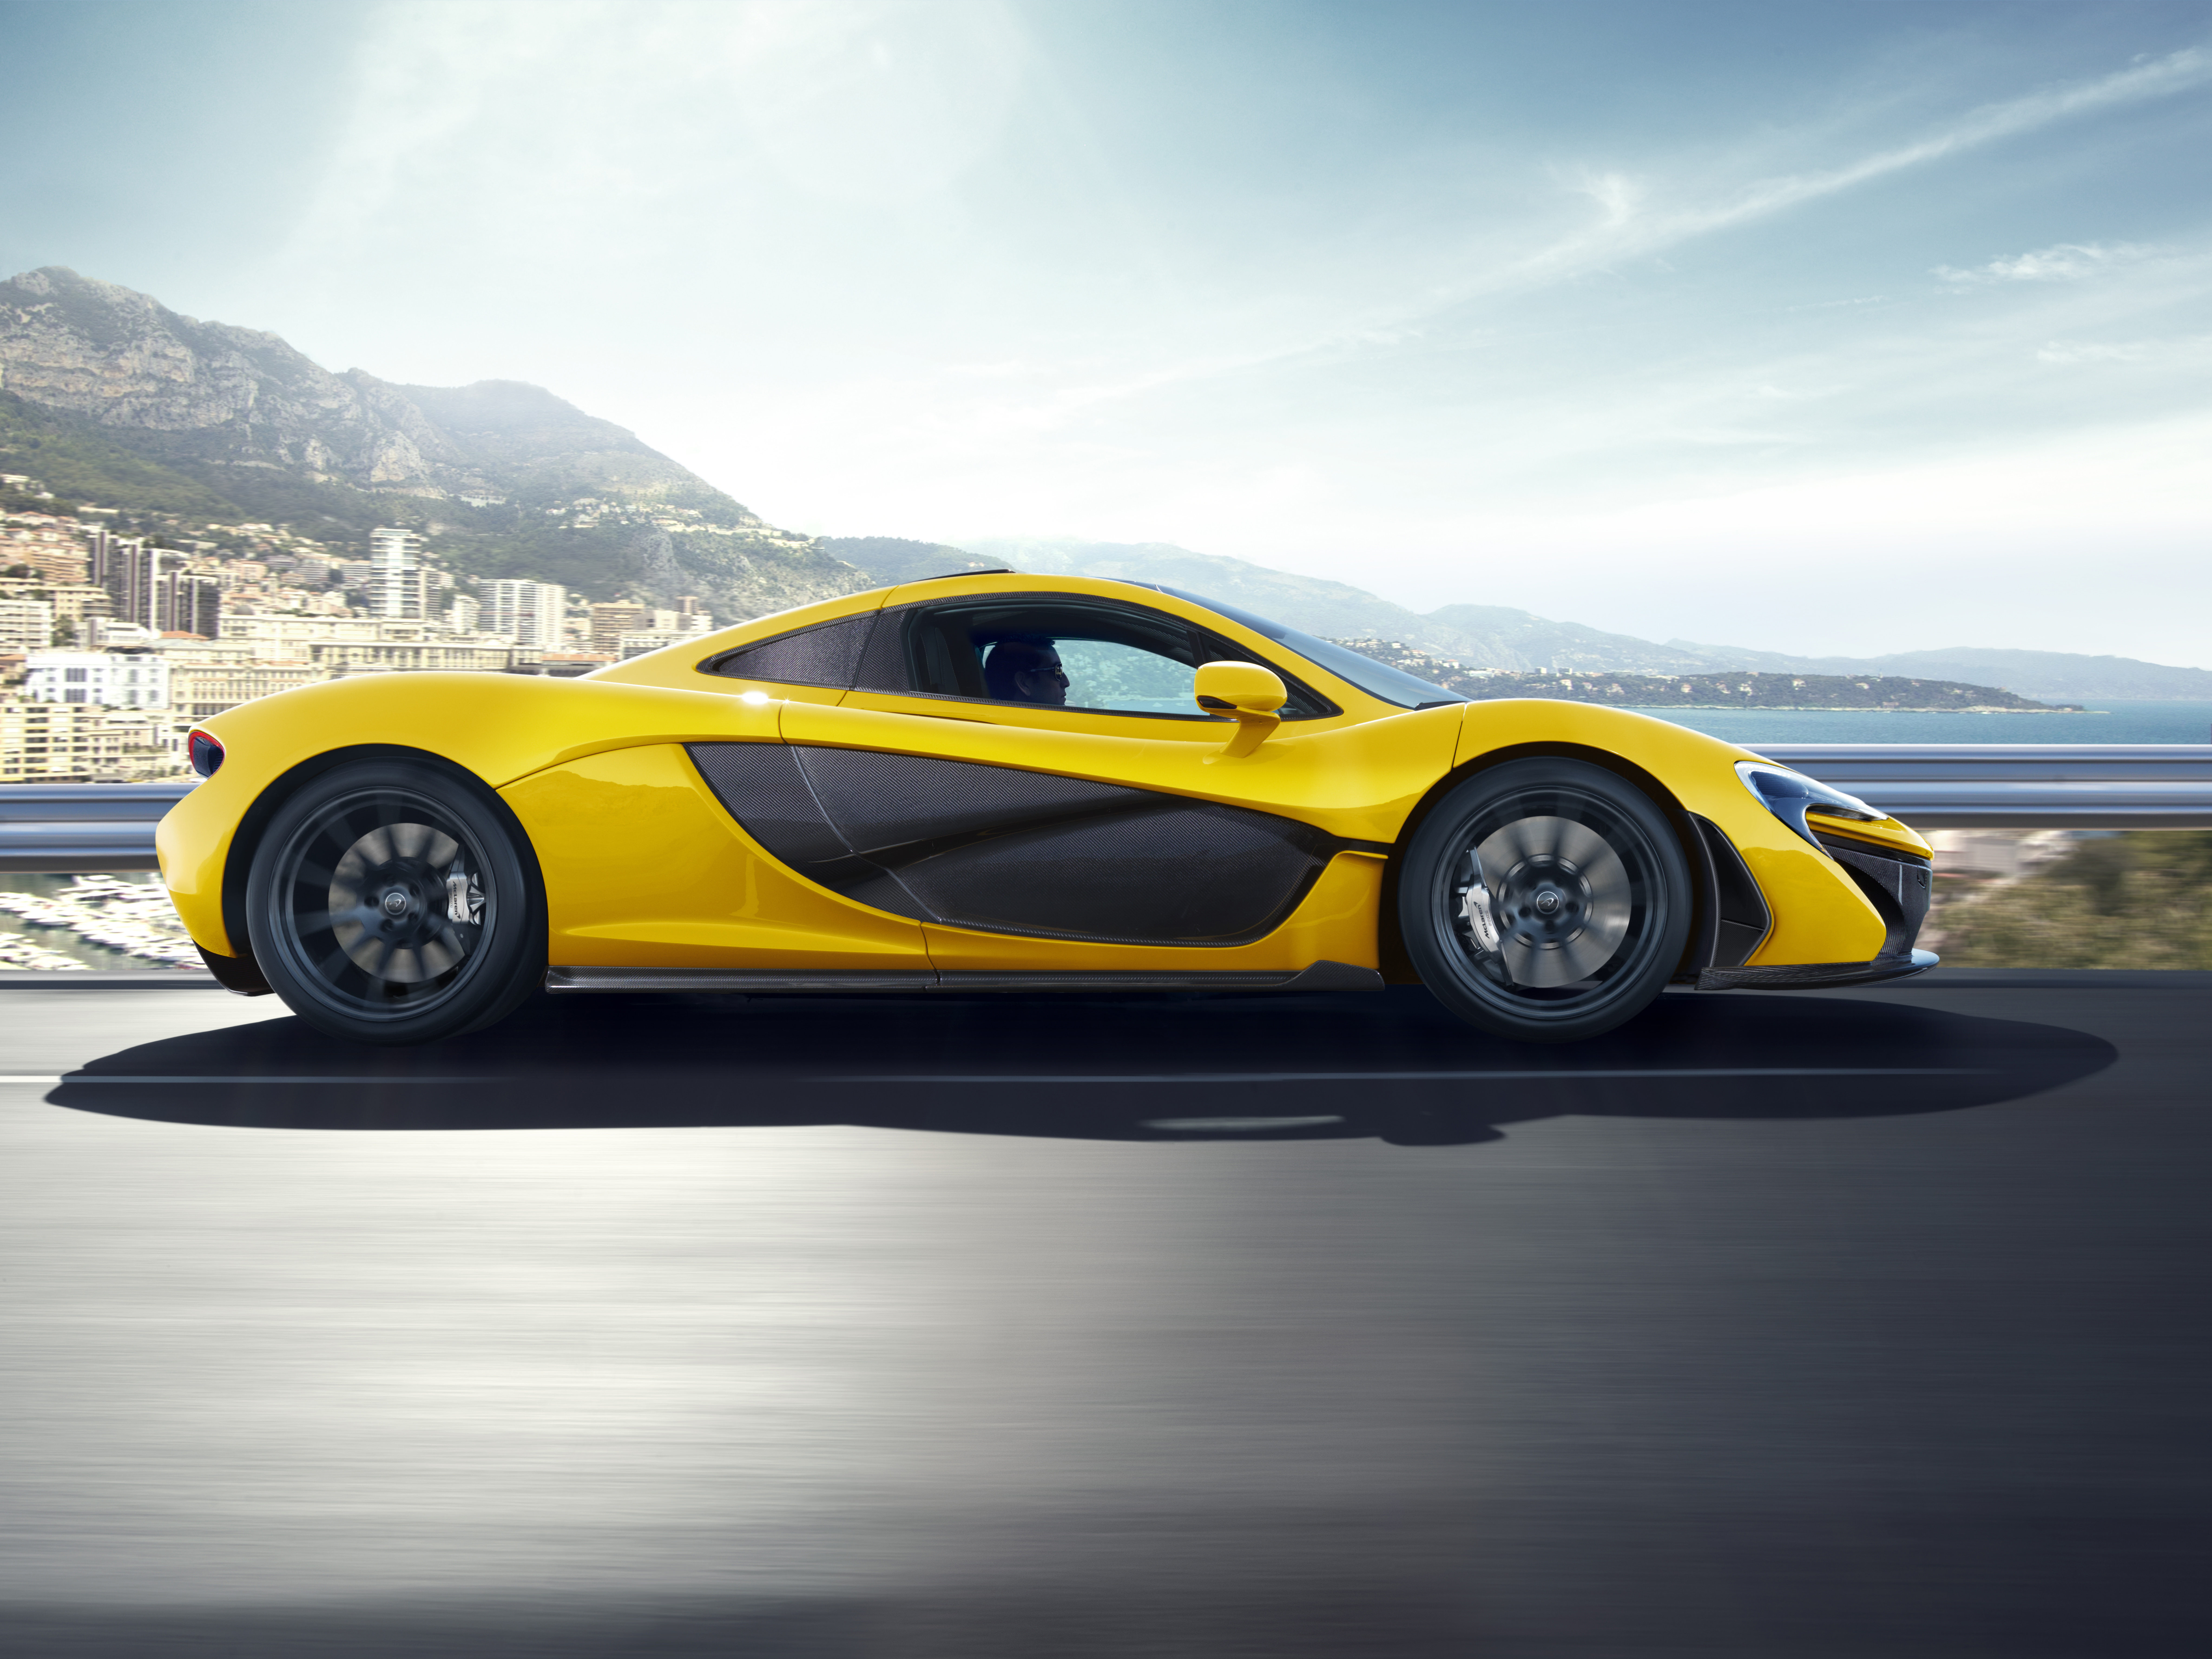 Car Mclaren Mclaren P1 Sport Car Supercar Vehicle Yellow Car 8176x6132